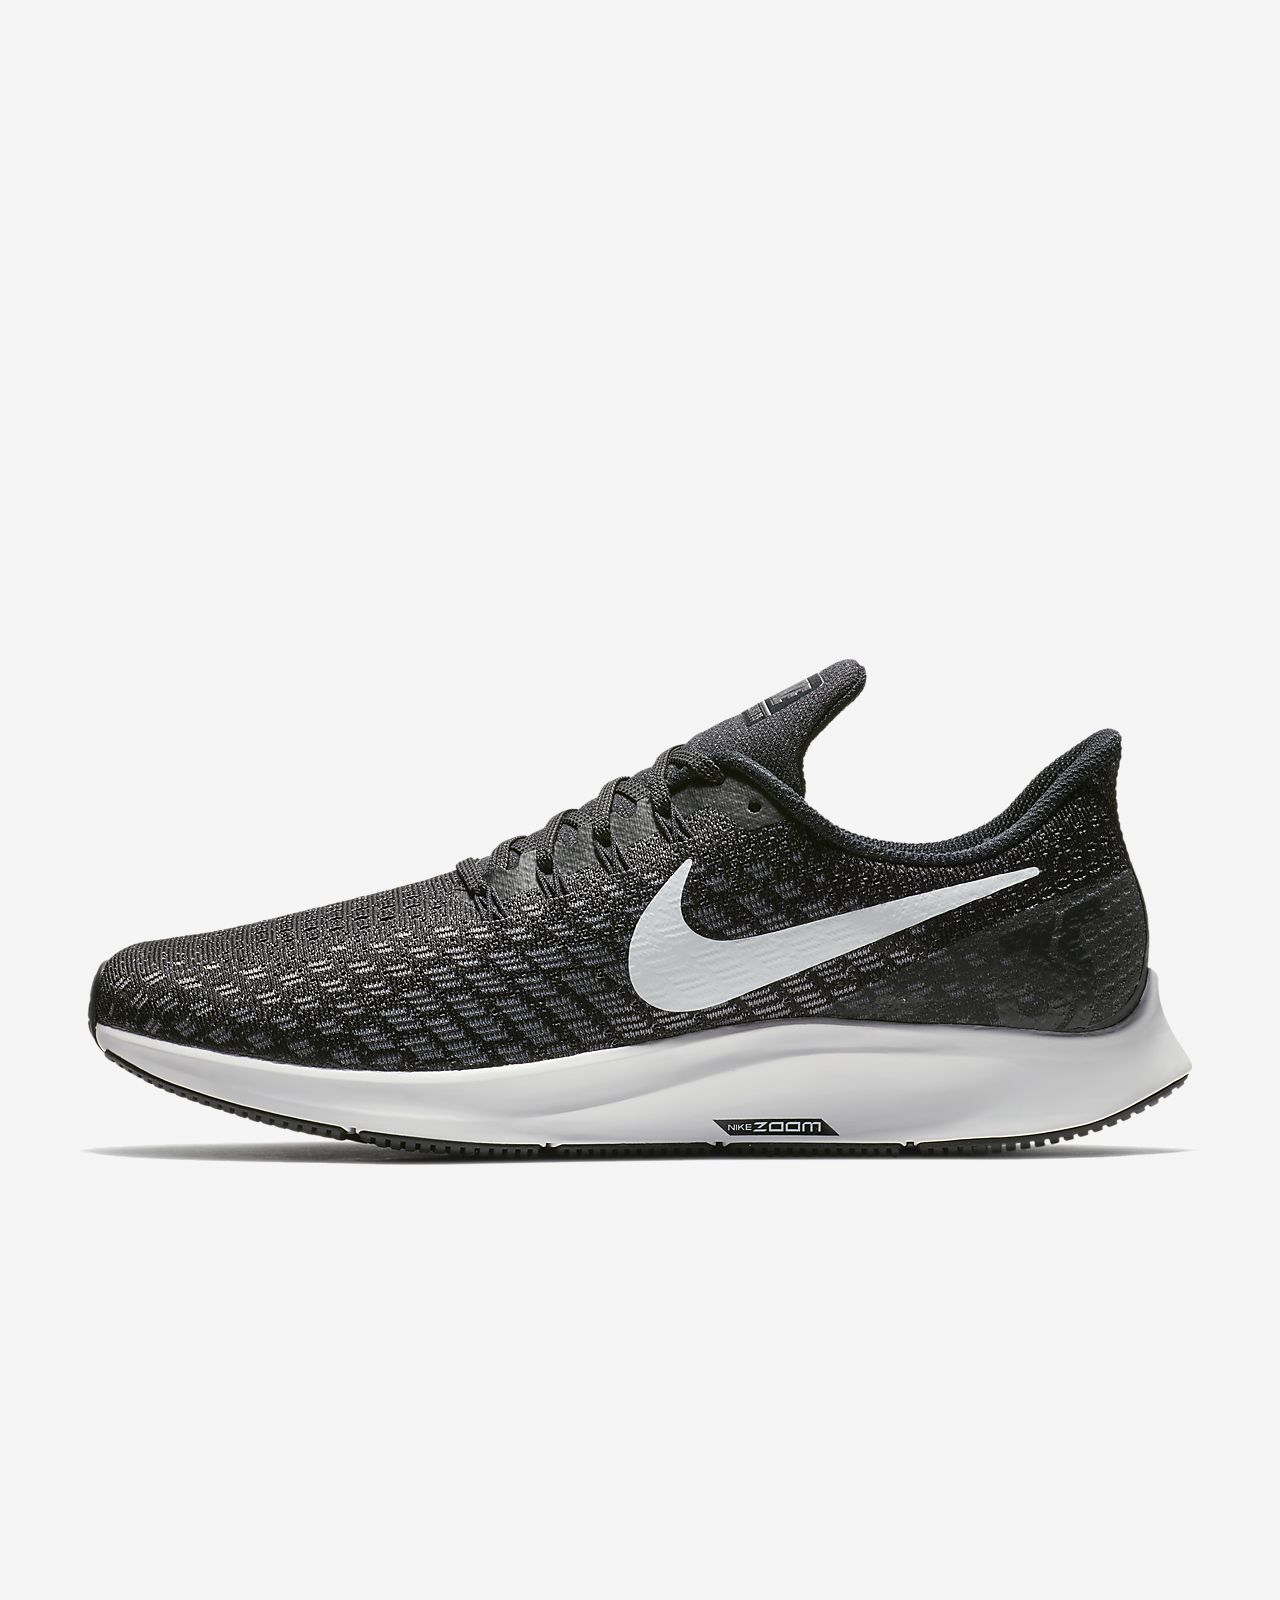 reputable site a151a 0de25 ... Nike Air Zoom Pegasus 35 Men s Running Shoe